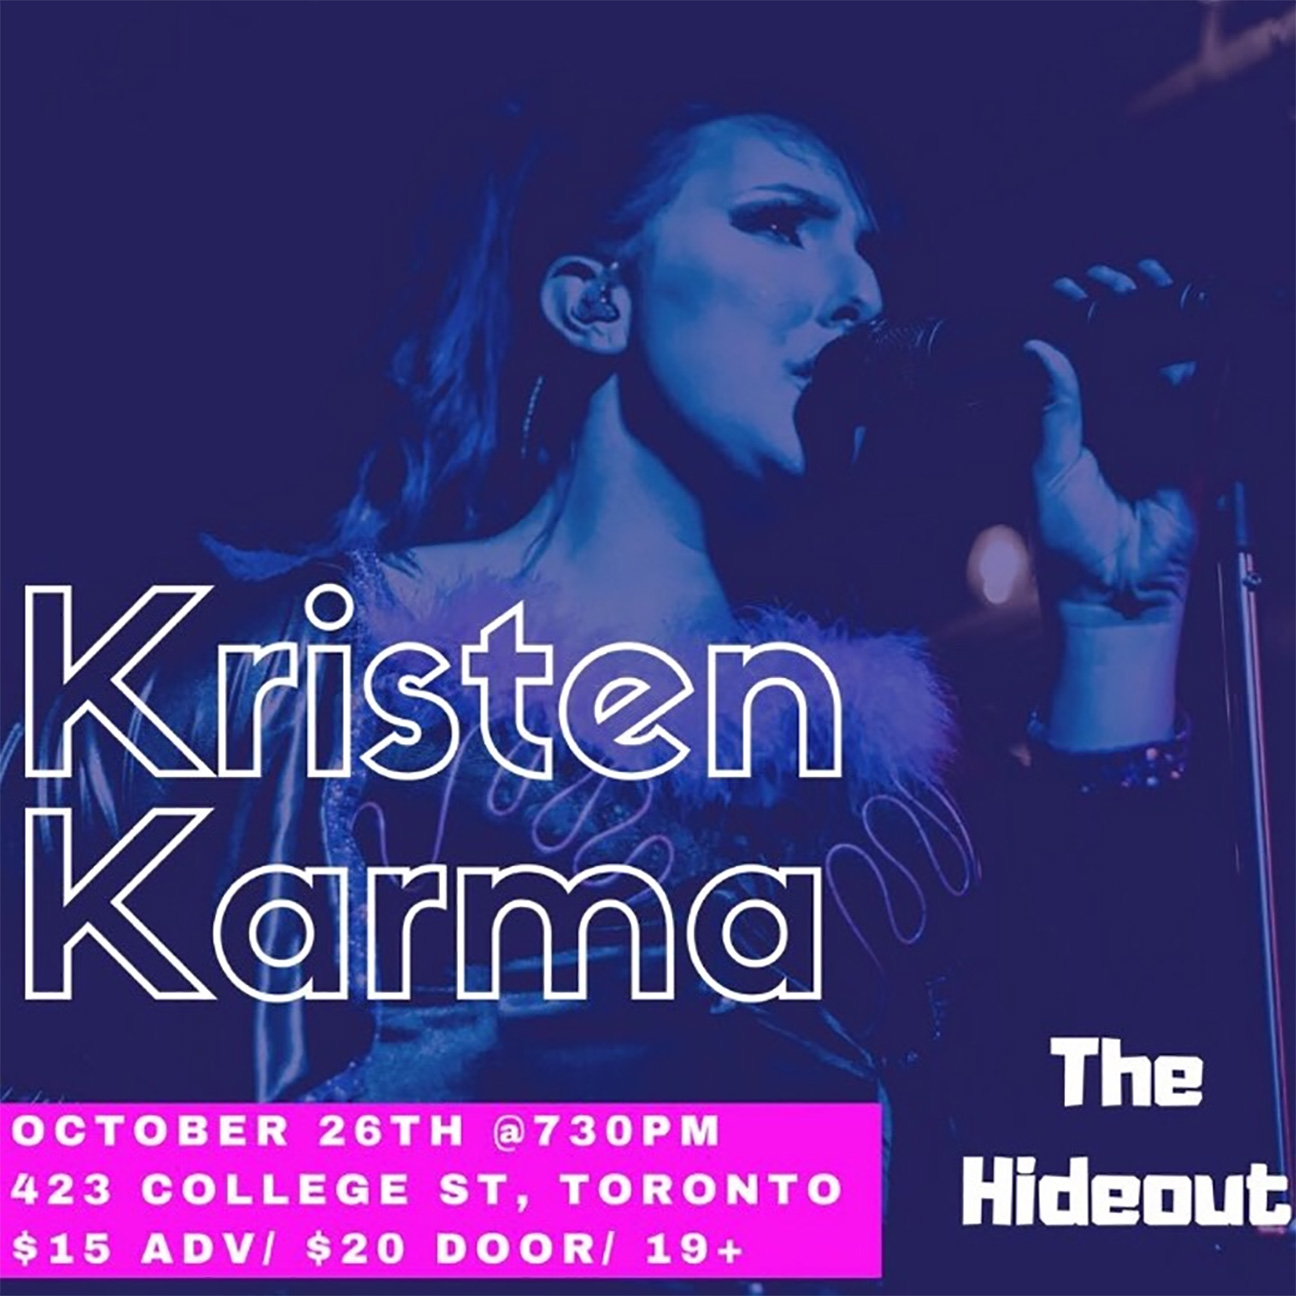 Come celebrate Kristen Karma's Dirrty Thirty Birthday Bash in Style at the Hideout on October 26!  Since Halloween is right around the corner, costumes are encouraged!  --  PERFORMANCES BY:  Kristen Karma  http://www.facebook.com/kristenkarmaofficial   Uforia  https://www.facebook.com/uforiaband/   Like Satellites  https://www.facebook.com/likesatellitesband   --  Tickets: $15 Adv/$20 Door  423 College Street, Toronto ON  Facebook Event:  https://www.facebook.com/events/174750660030951/